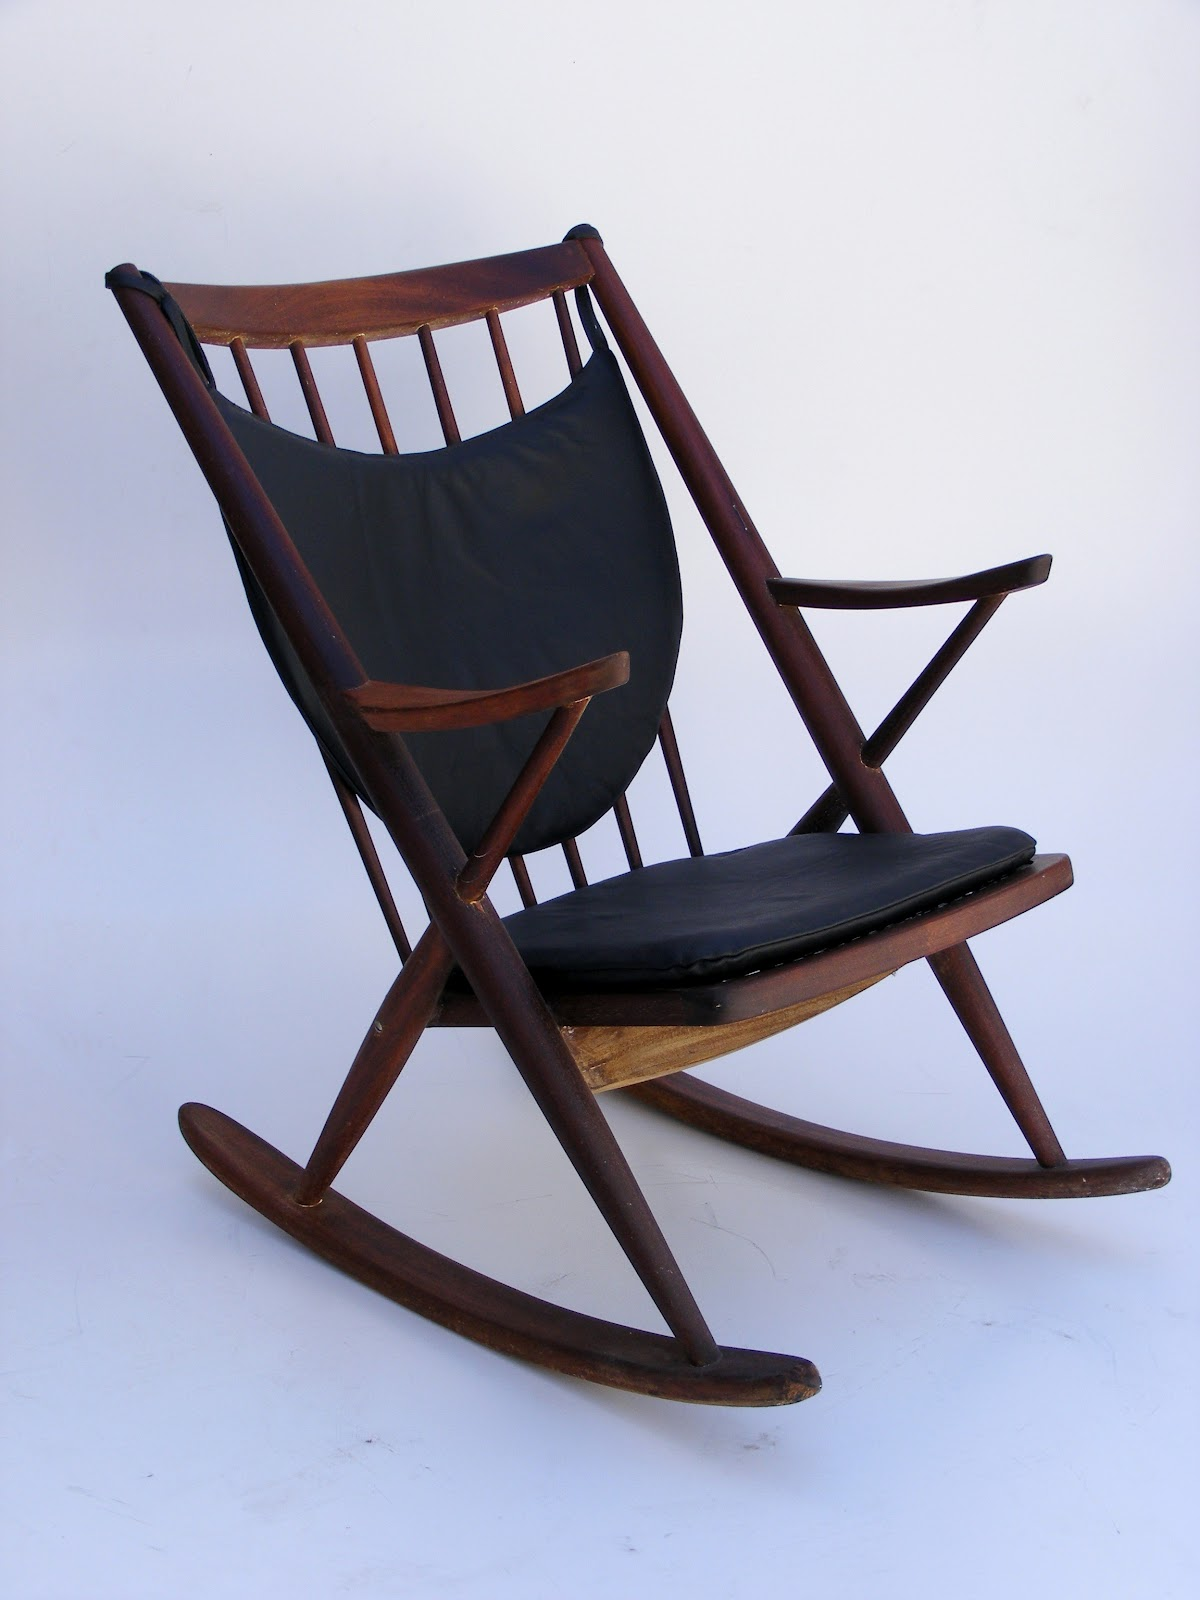 Frank reenskaug rocking chair - Frank Reenskaug Model 182 Rocking Chair With Leather Cushions Chair Manufactured By Bramin M Bler Denmark In1958